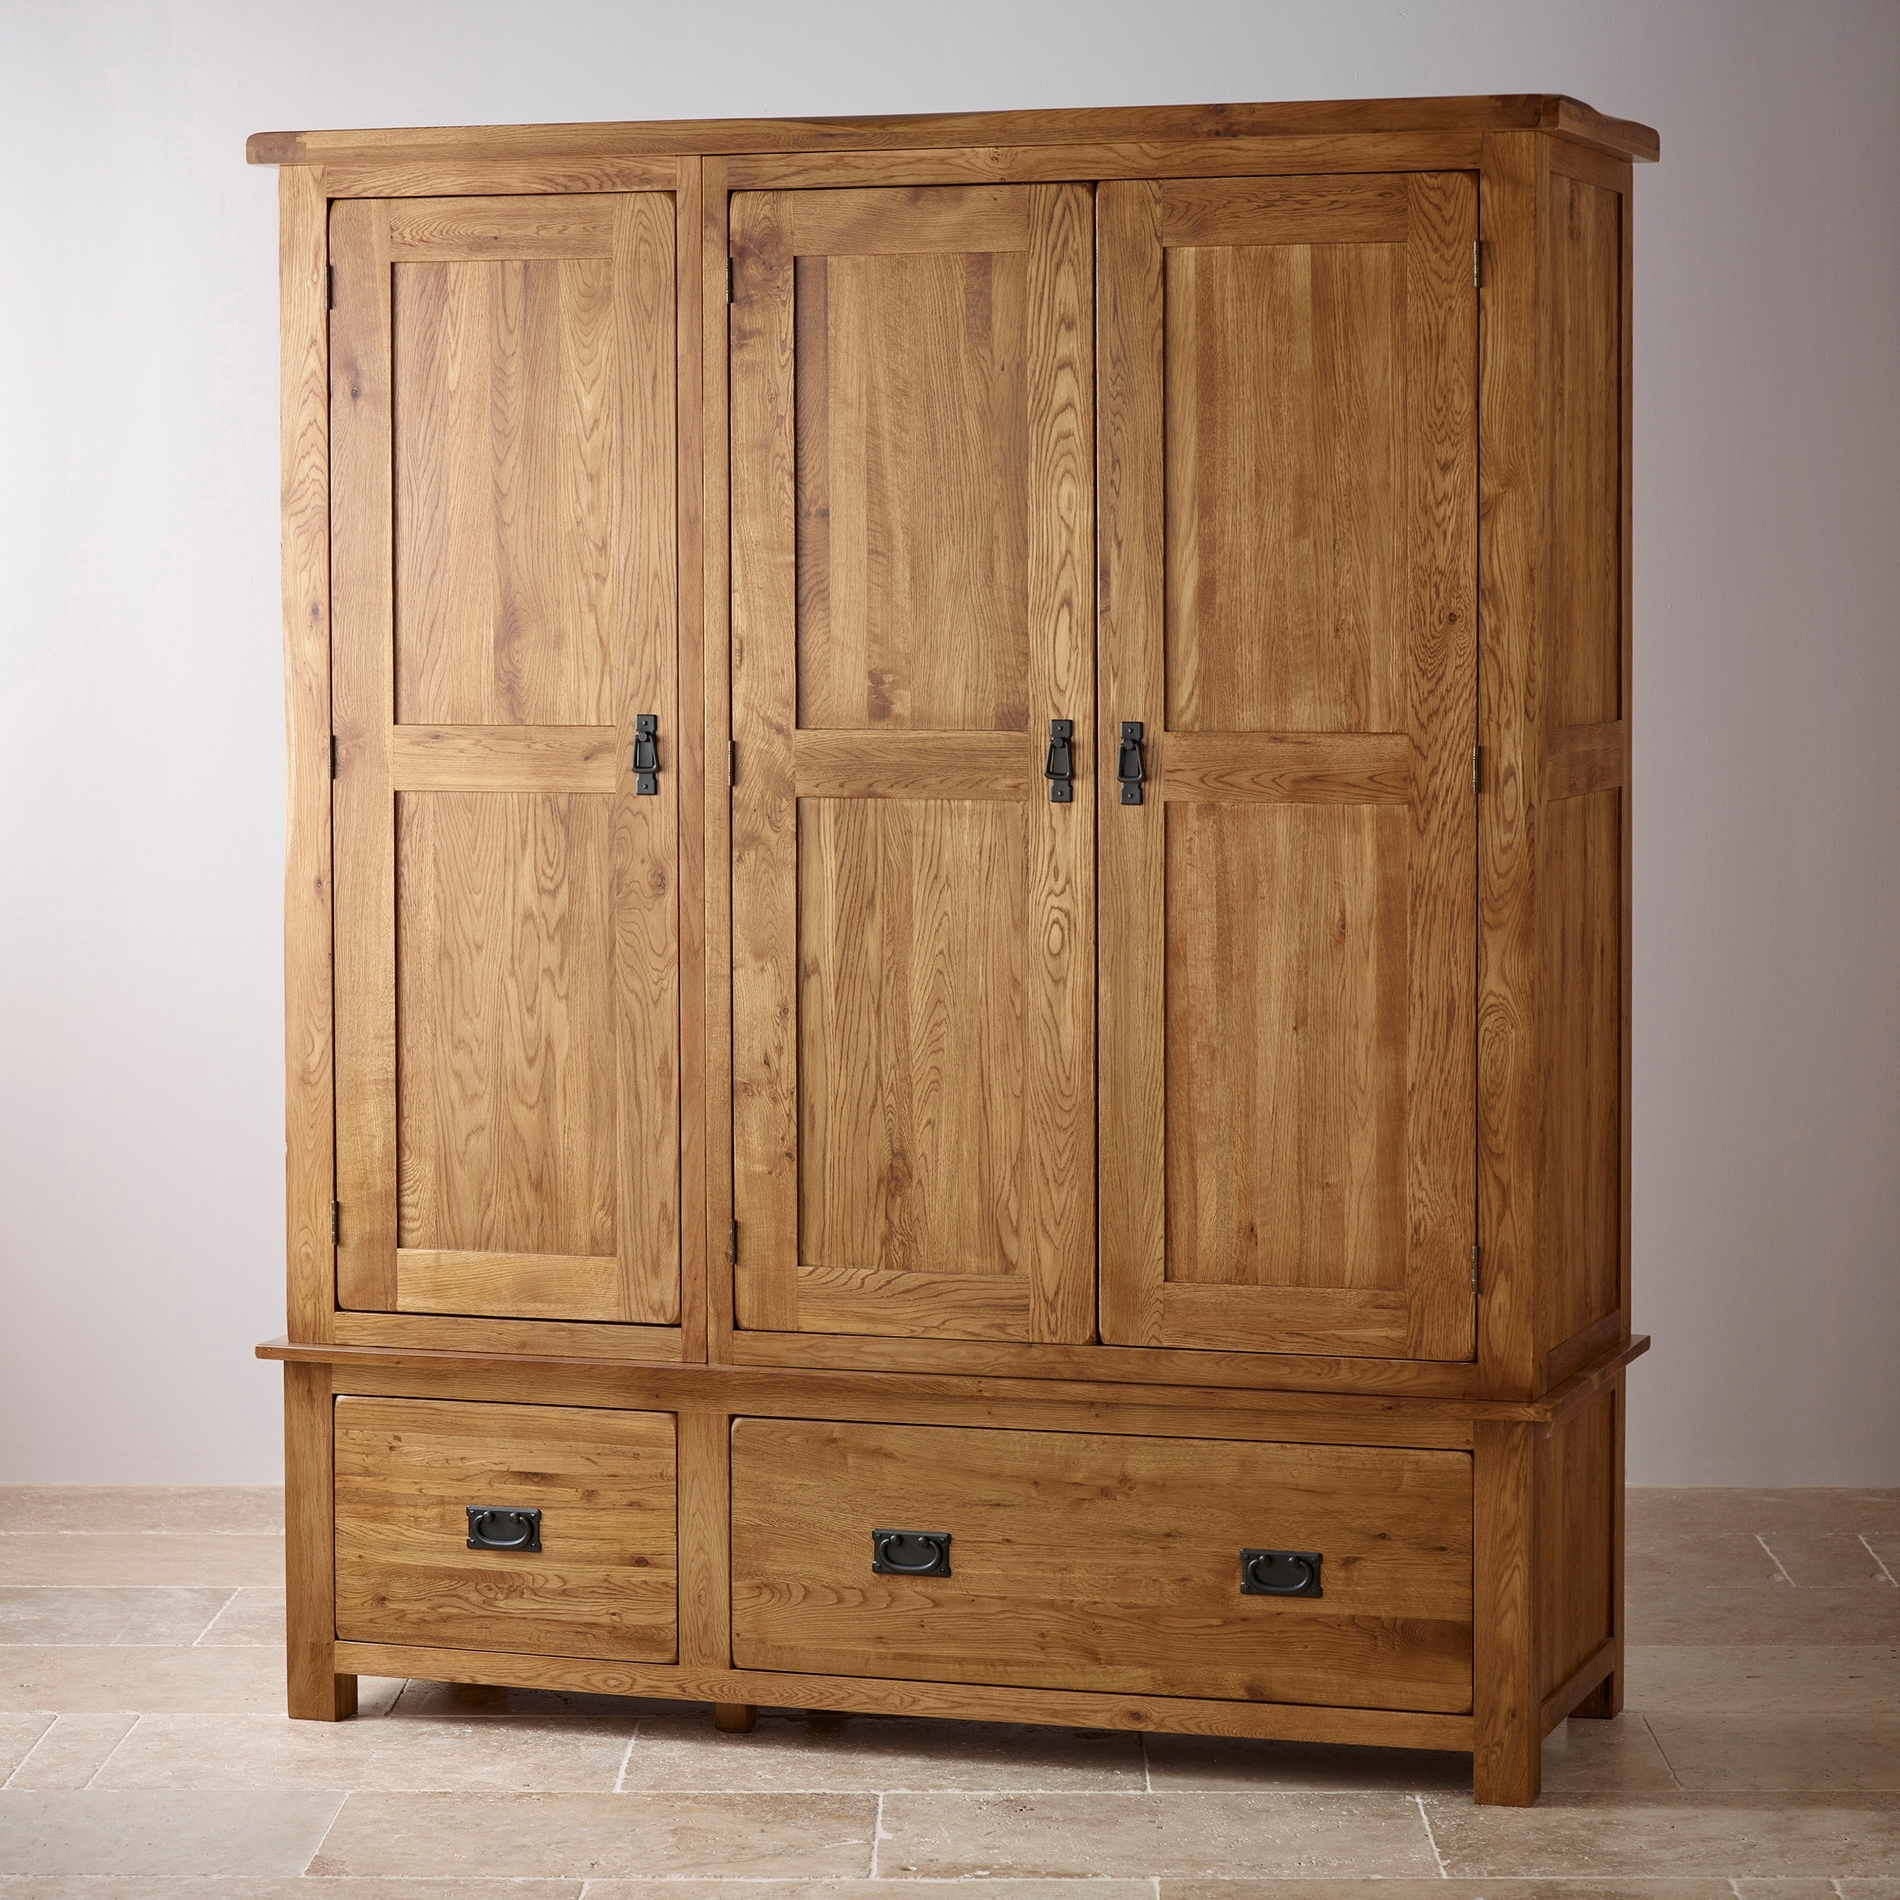 Oak Furniture Land Throughout Triple Oak Wardrobes (View 10 of 15)